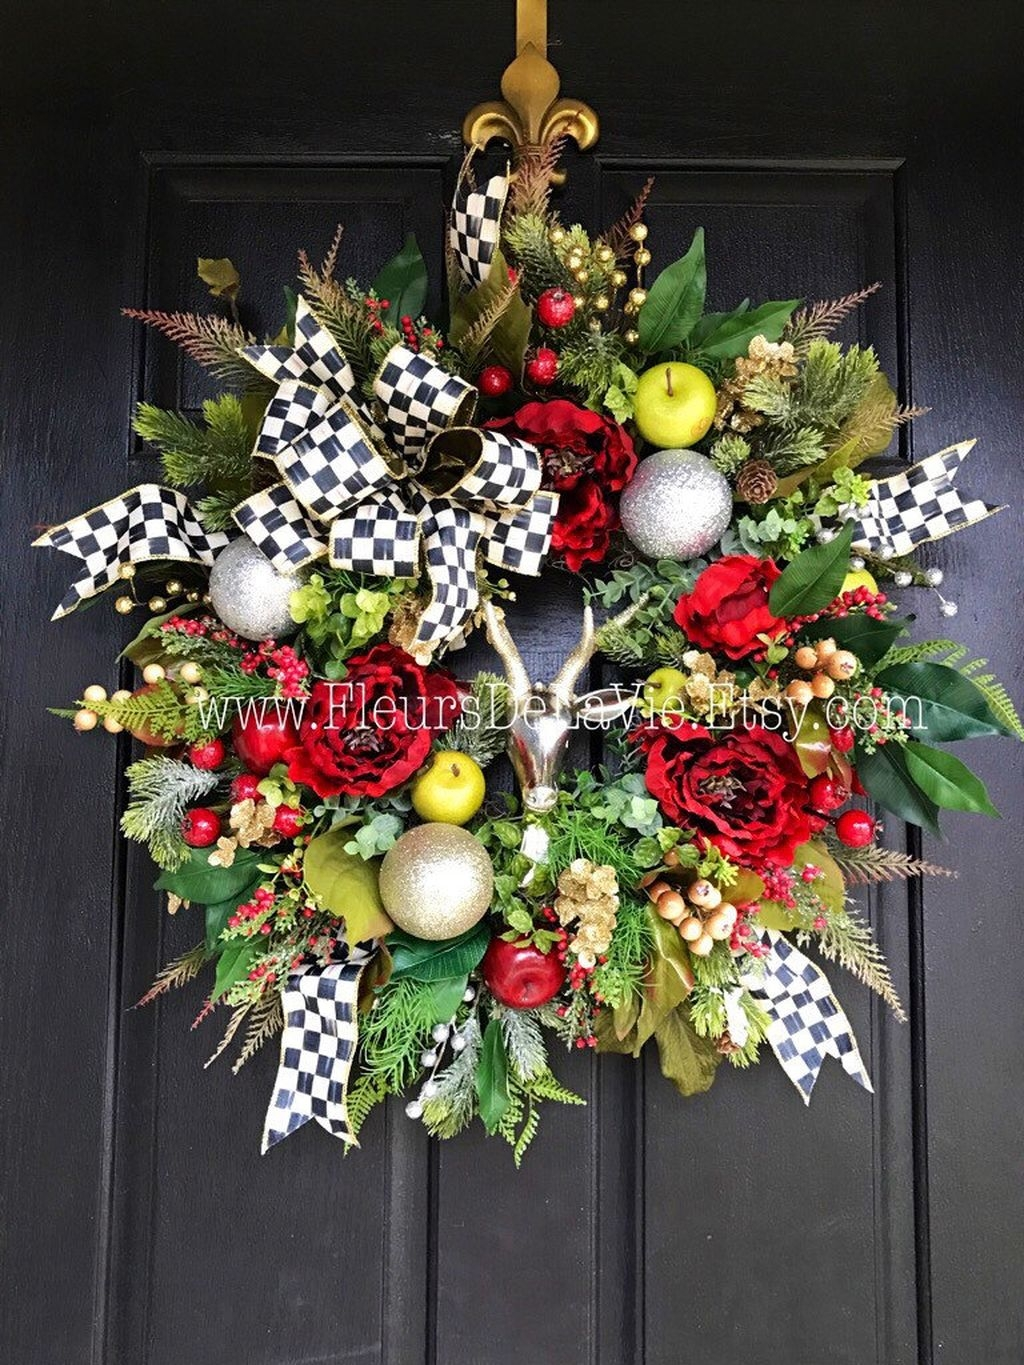 Colorful Christmas Wreaths Decoration Ideas For Your Front Door 28